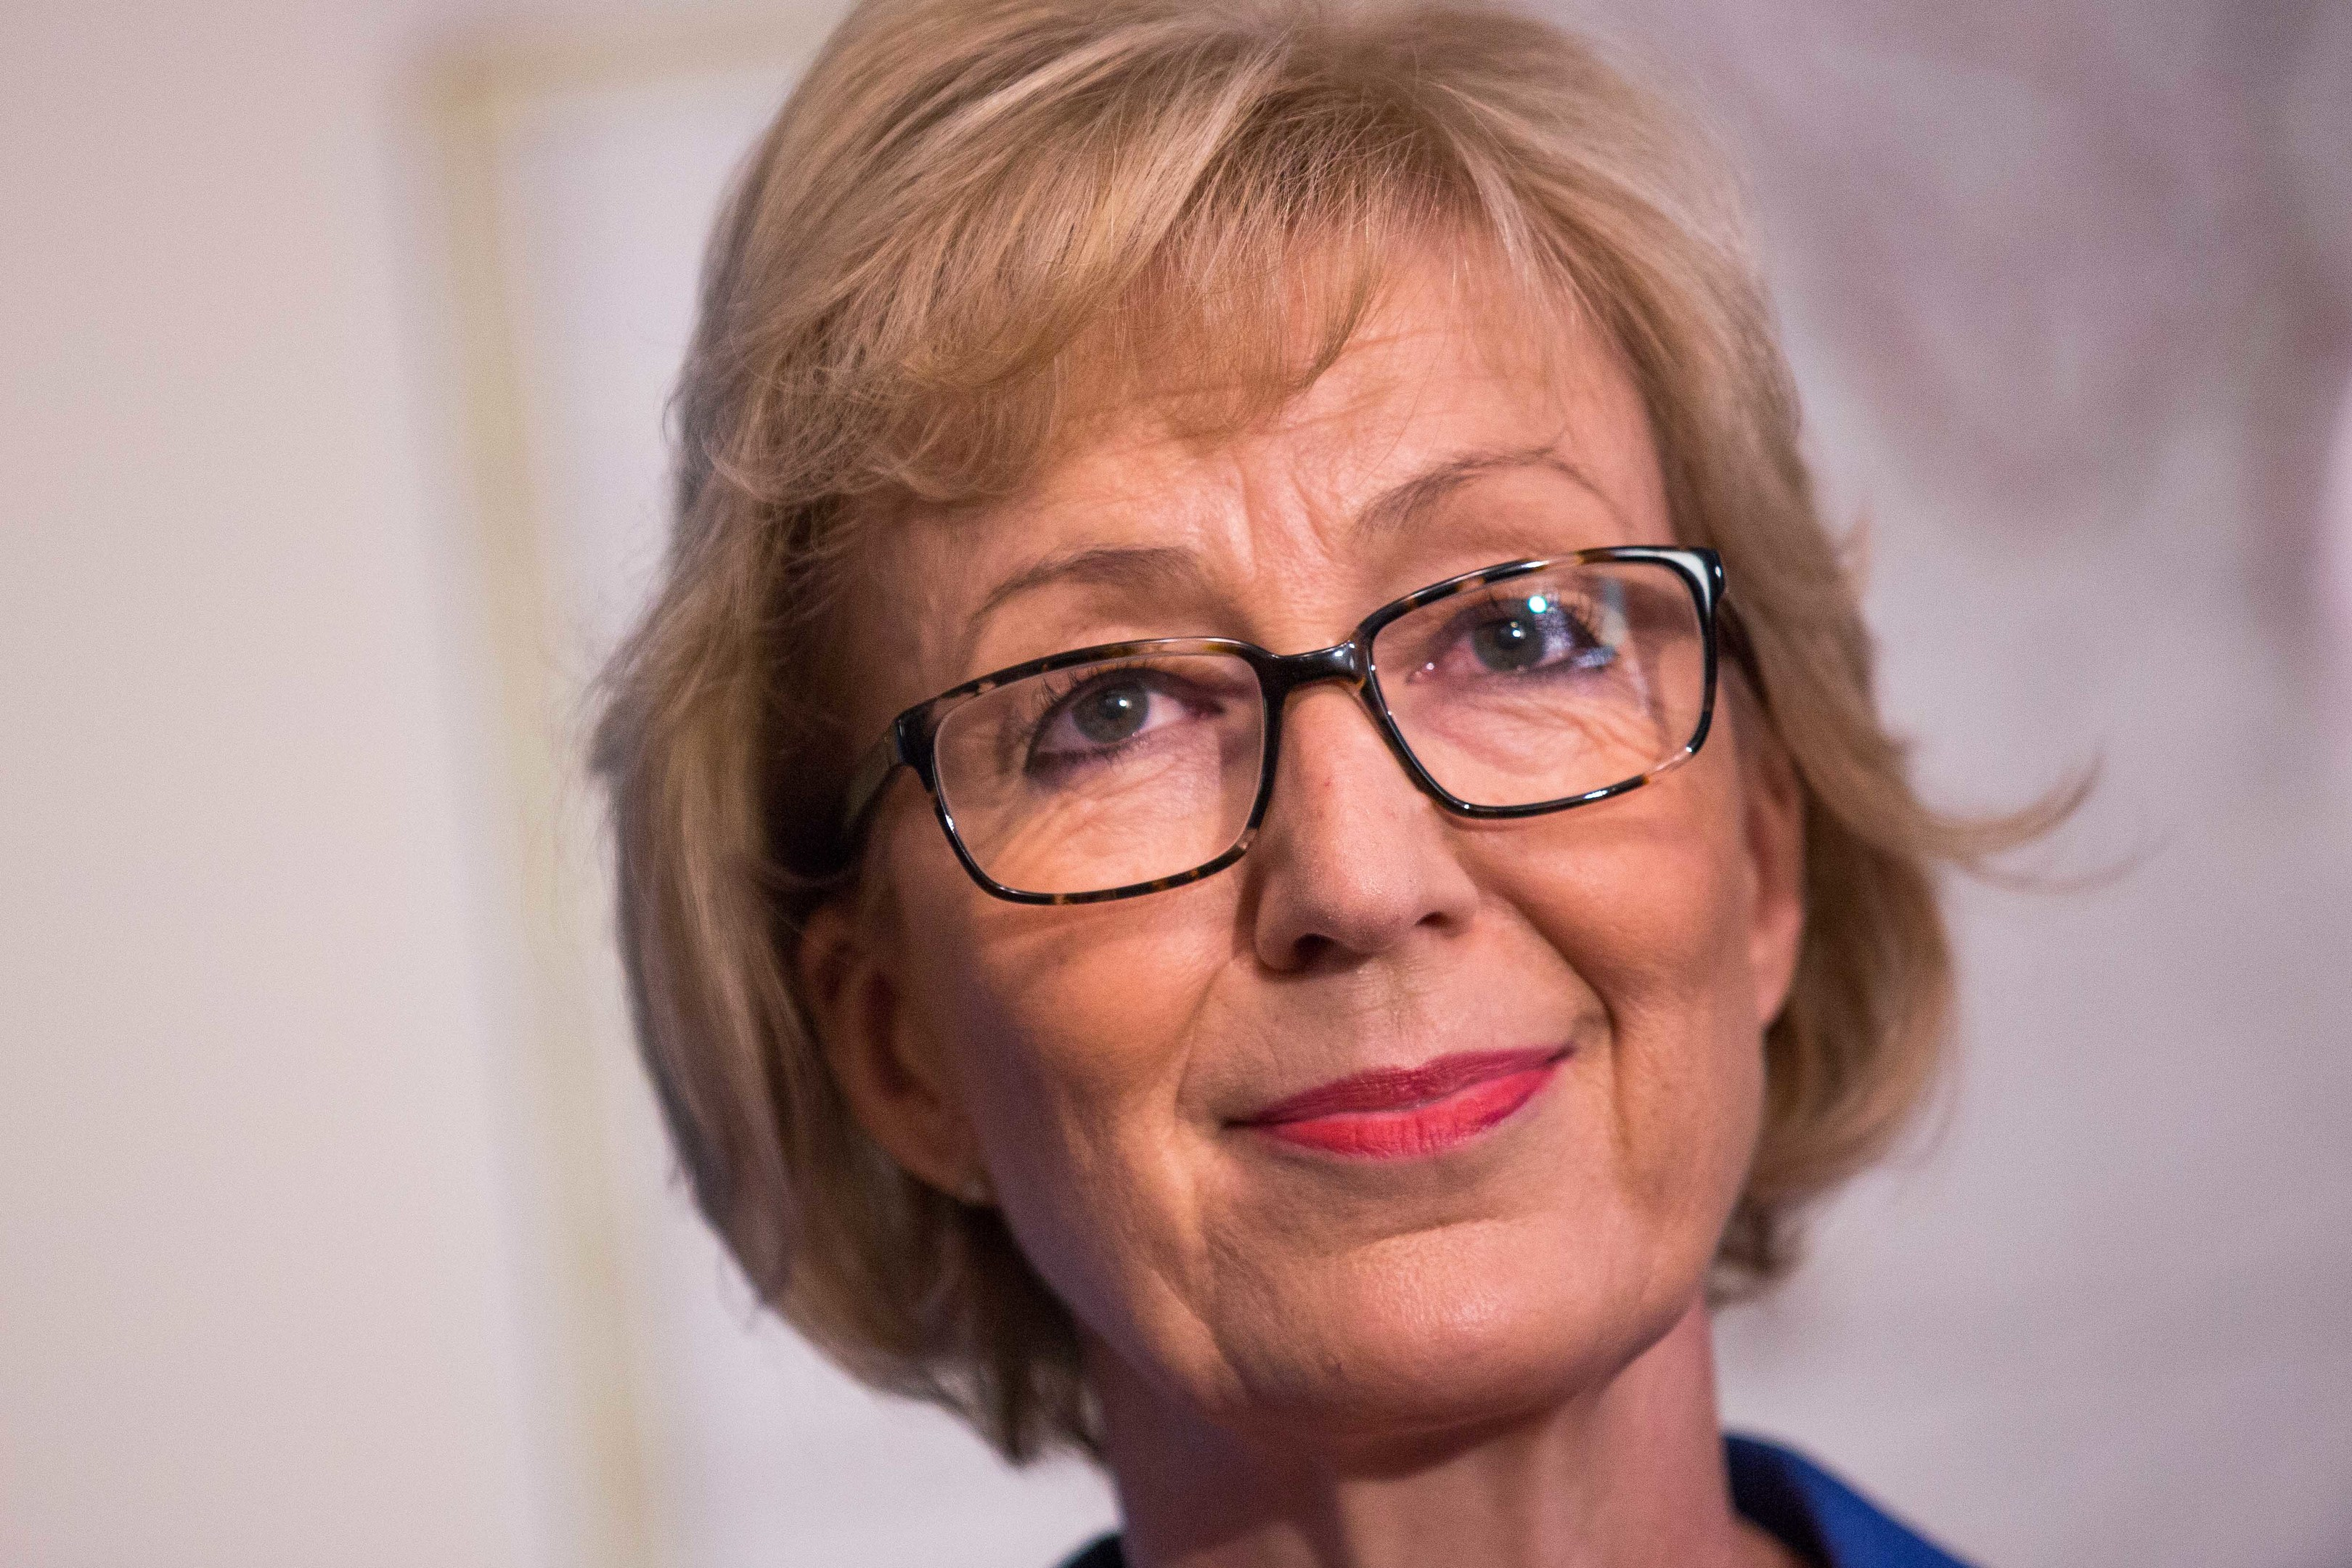 Mrs Leadsom said the meeting had been constructive